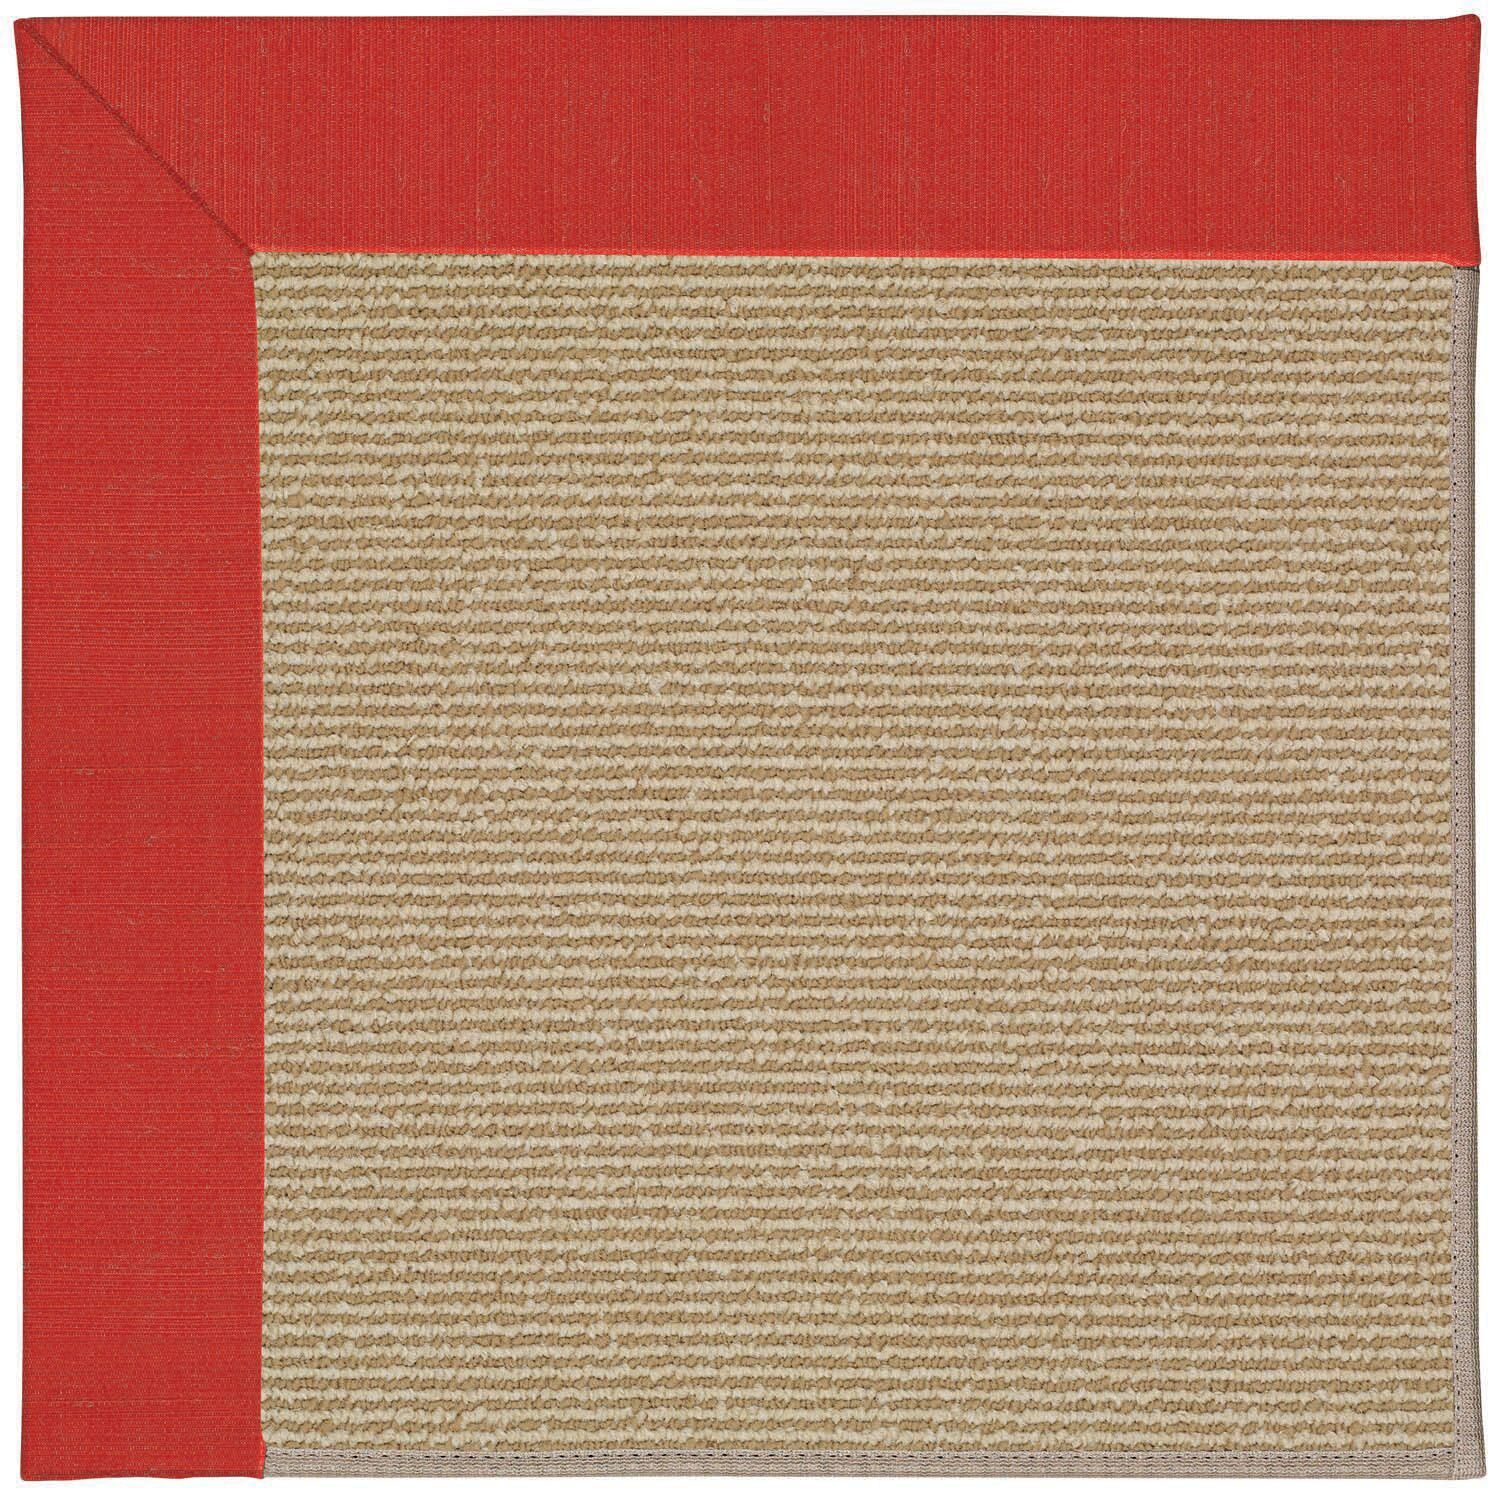 Lisle Machine Tufted Red Crimson/Brown Indoor/Outdoor Area Rug Rug Size: Rectangle 9' x 12'